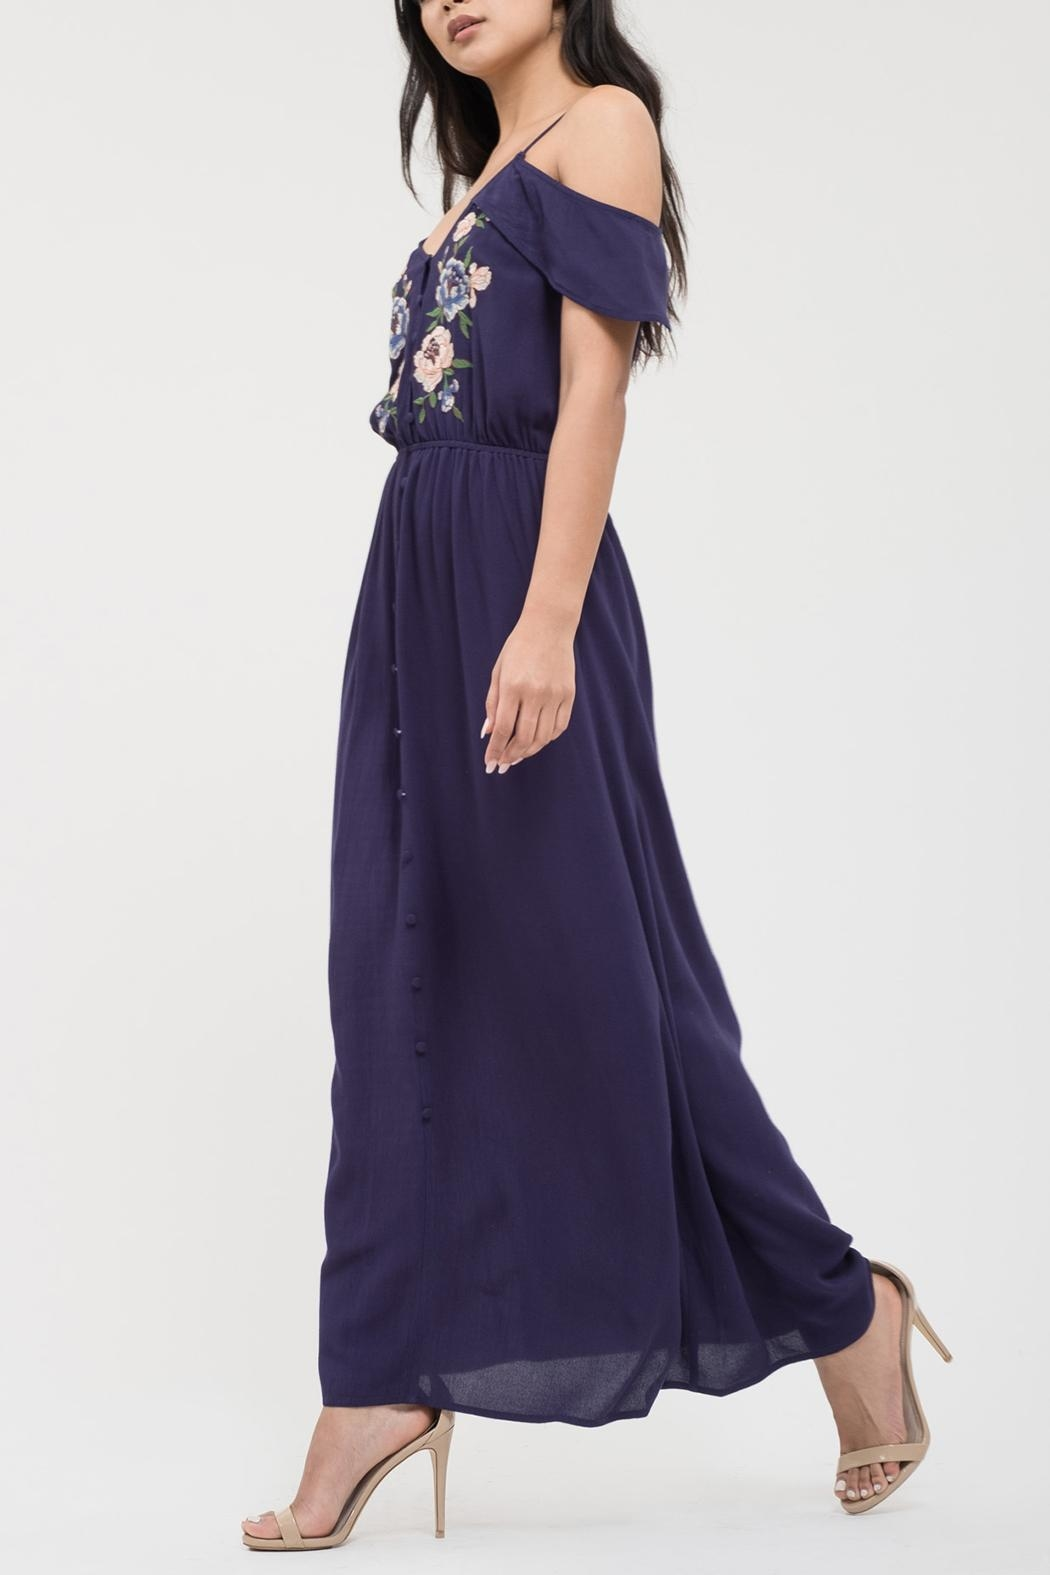 Blu Pepper Sweetheart Embroidered Maxi - Front Full Image